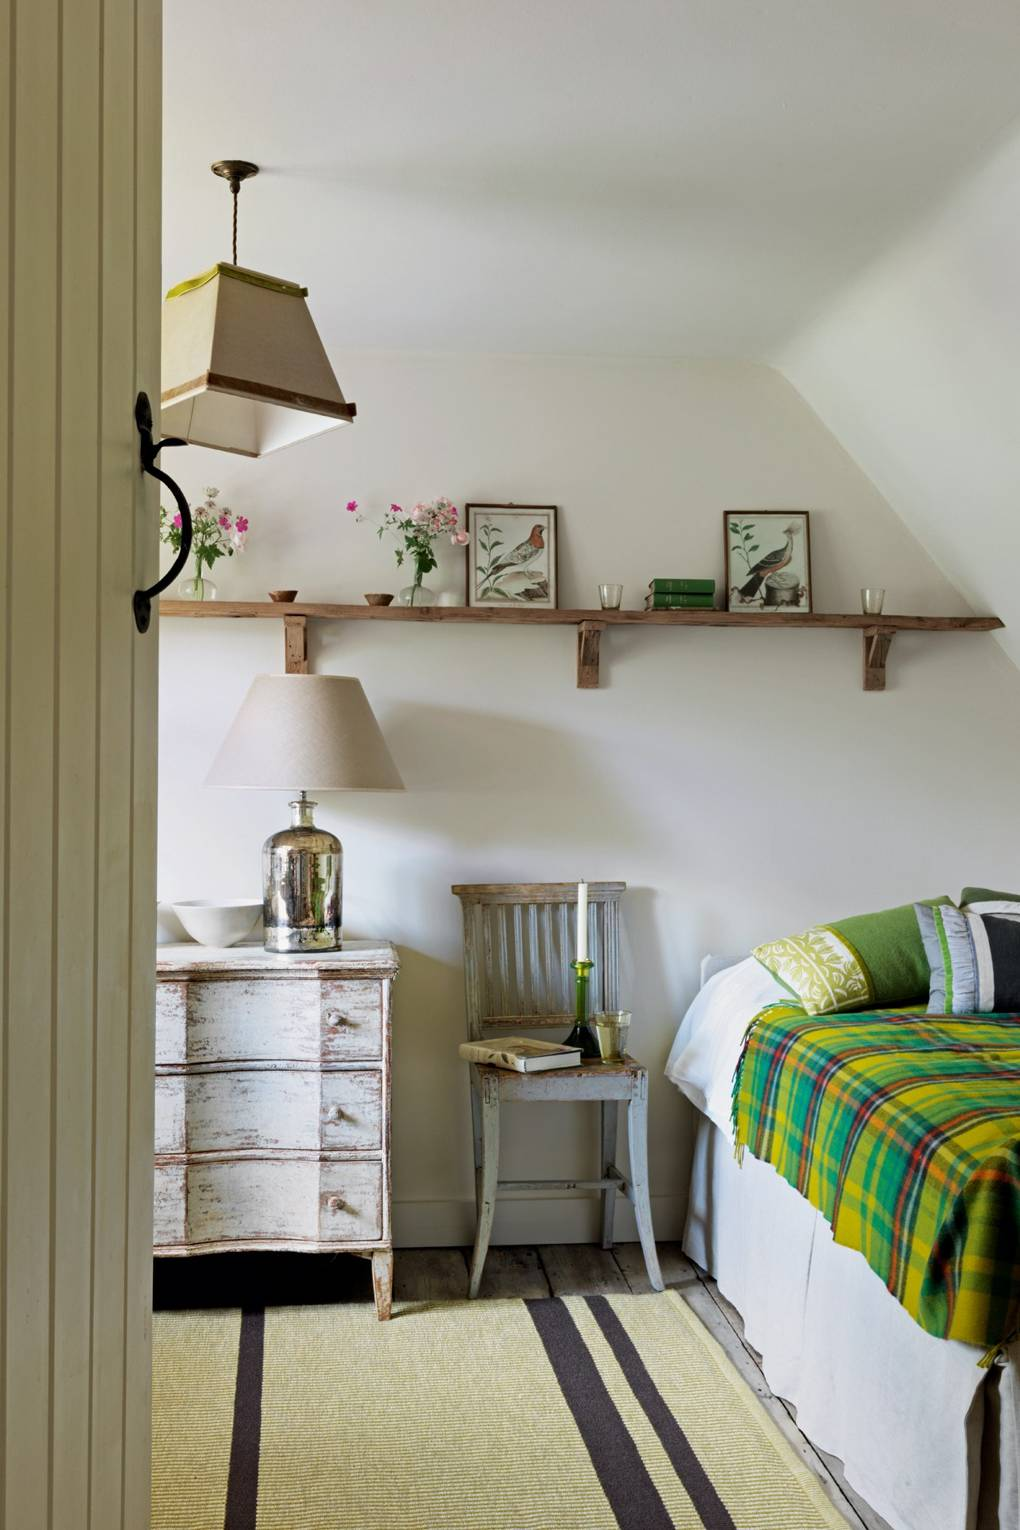 Small Cottage Bedroom - Small Space Ideas | House & Garden on insurance for small homes, interior designs for small homes, style for small homes, tips for small homes, home decor for small homes, furniture for small homes, gardens for small homes, gifts for small homes, curtains for small homes, bar designs for small homes, interior decorating ideas for small homes,